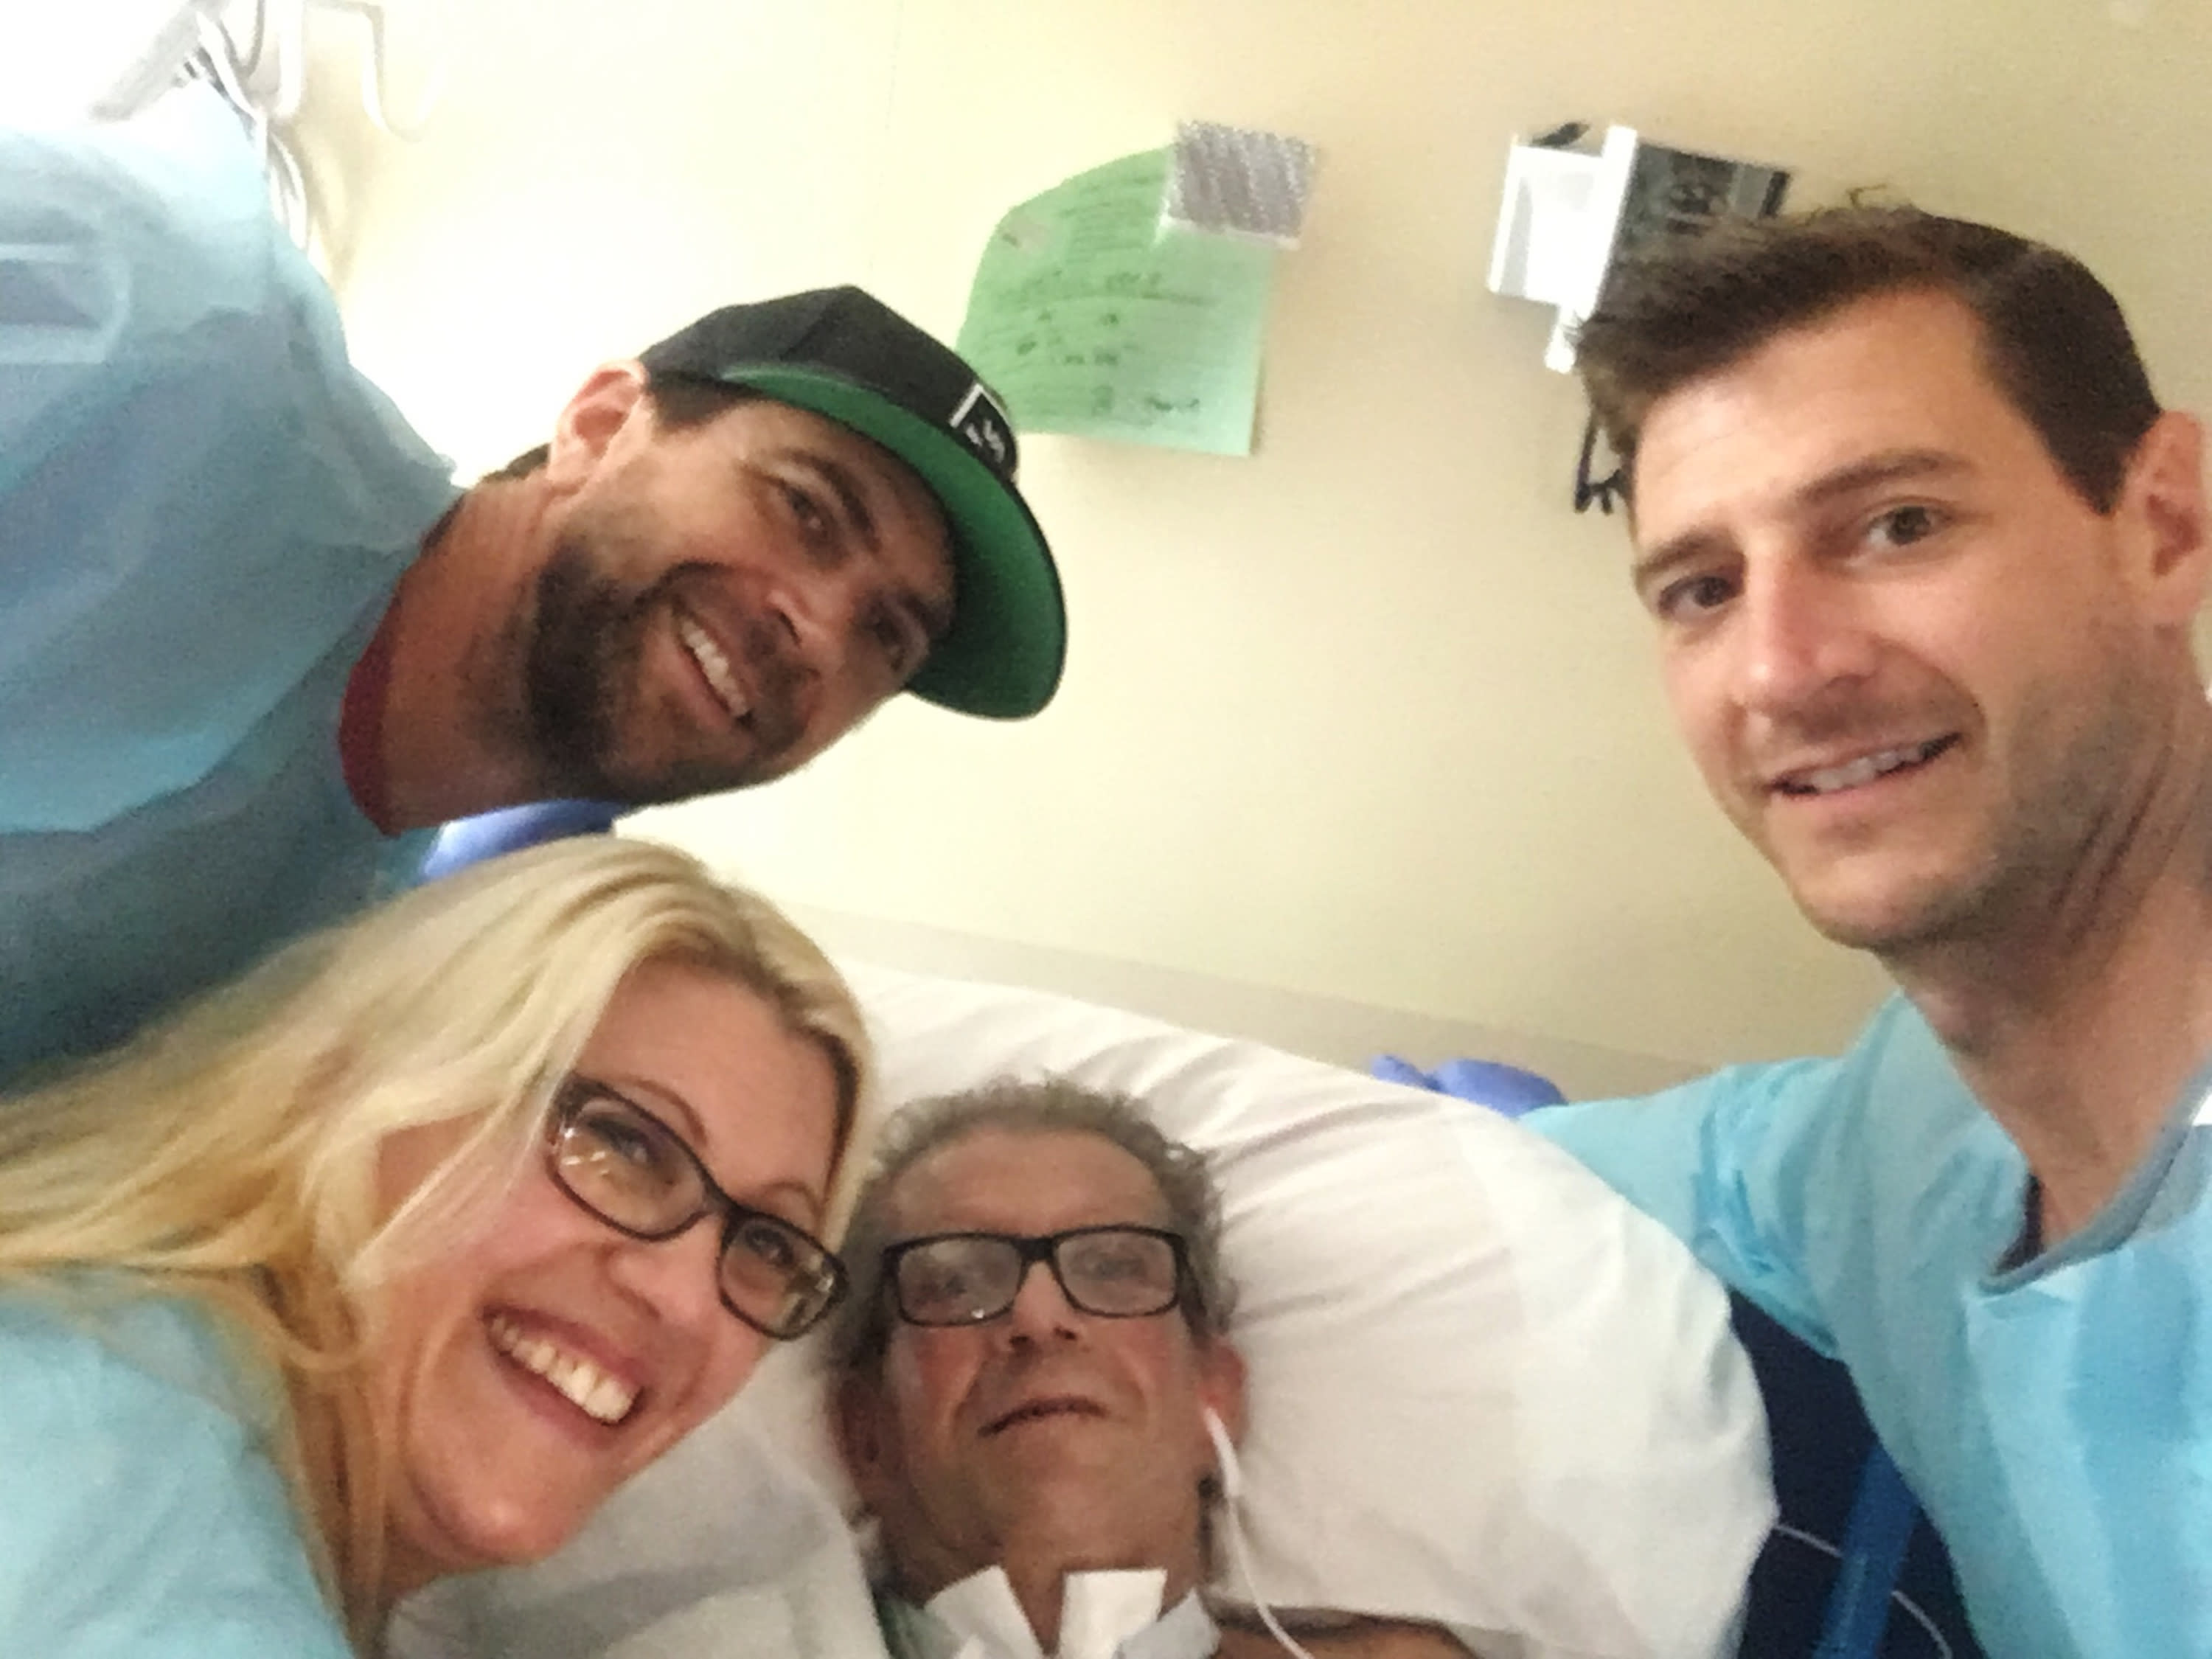 This June 16, 2019, photo provided by Jessee Ernest shows his father Paul Ernest, center, surrounded by family members at Vibra Hospital in Folsom, Calif. Ernest is joined by his sons Jessee, top left, Jake and his daughter, Arielle. Paul Ernest, who had been hospitalized since the deadliest wildfire in California history incinerated a town in November has died, raising the number of people killed to 86, authorities said Thursday, Aug. 8. (Jessee Ernest via AP)